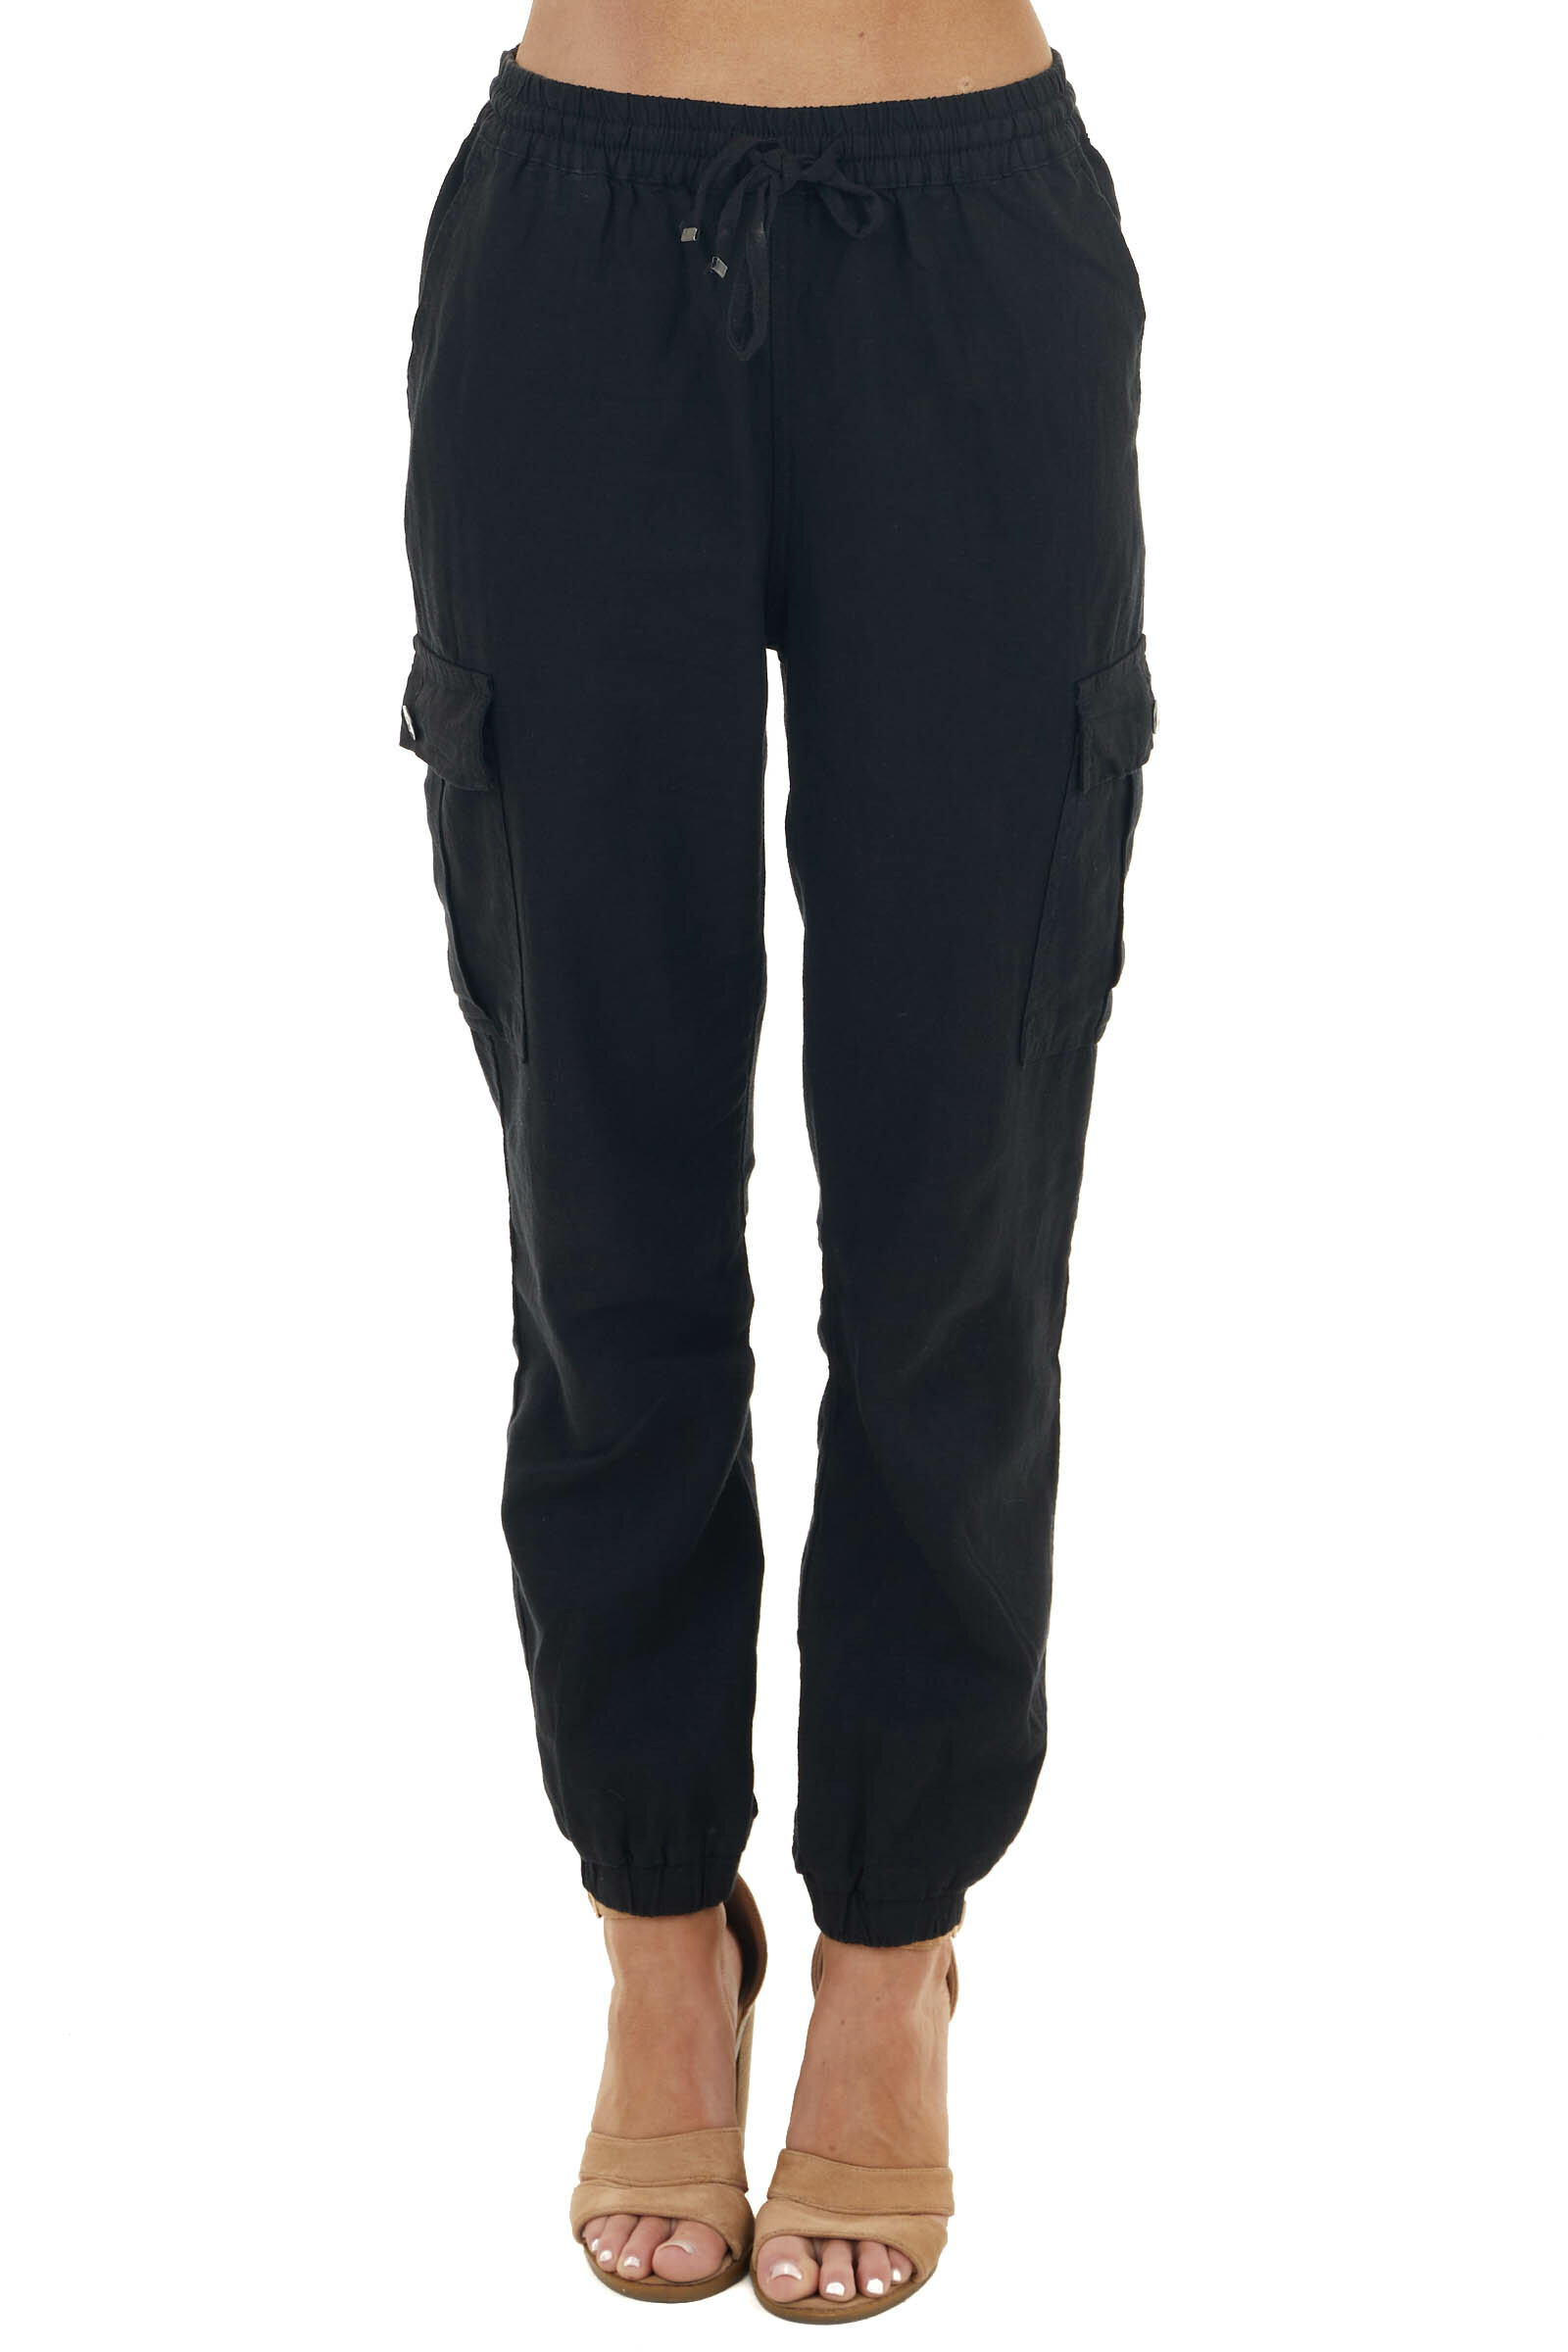 Black Lightweight Jogger Pants with Functional Pockets